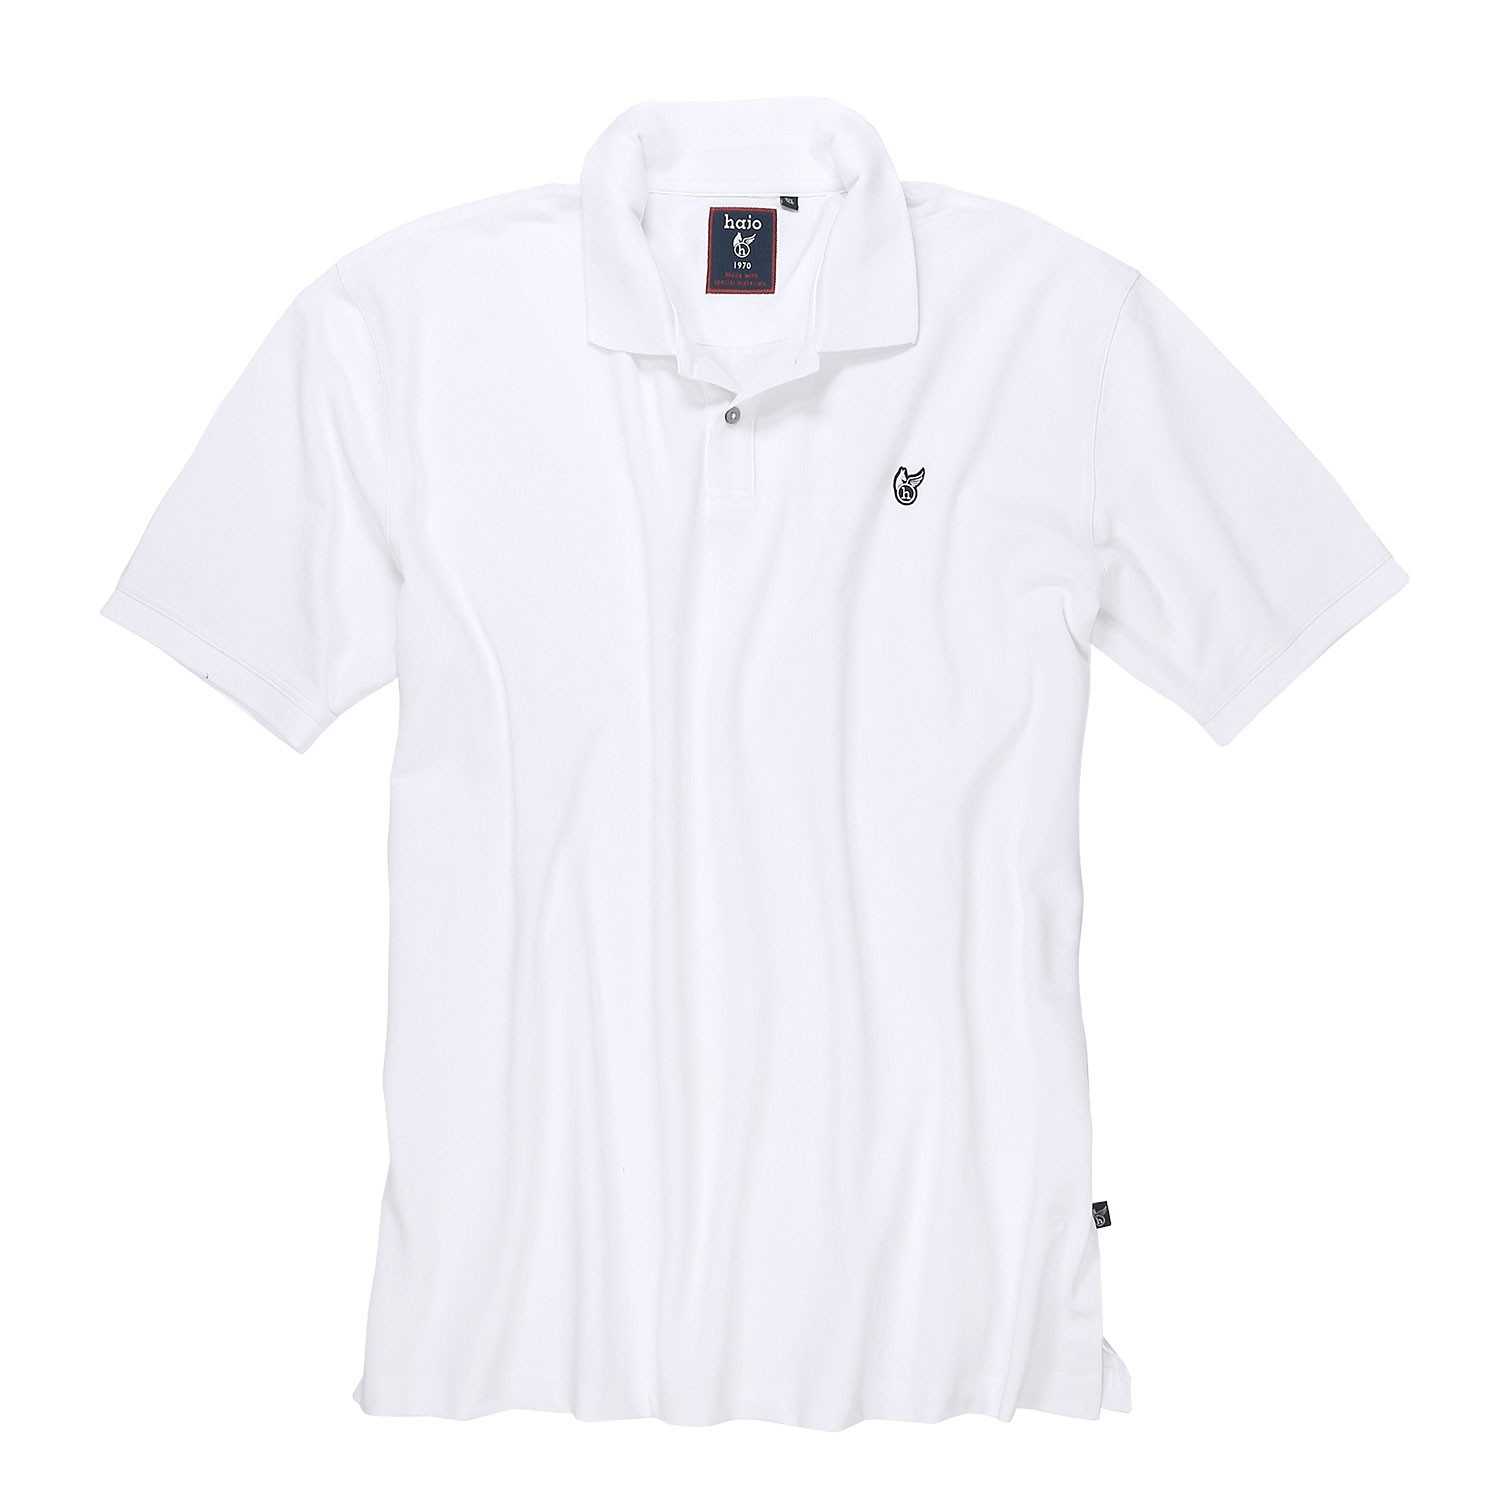 "Detail Image to Polo shirt ""stay fresh"" in white by hajo up to oversize 6XL"